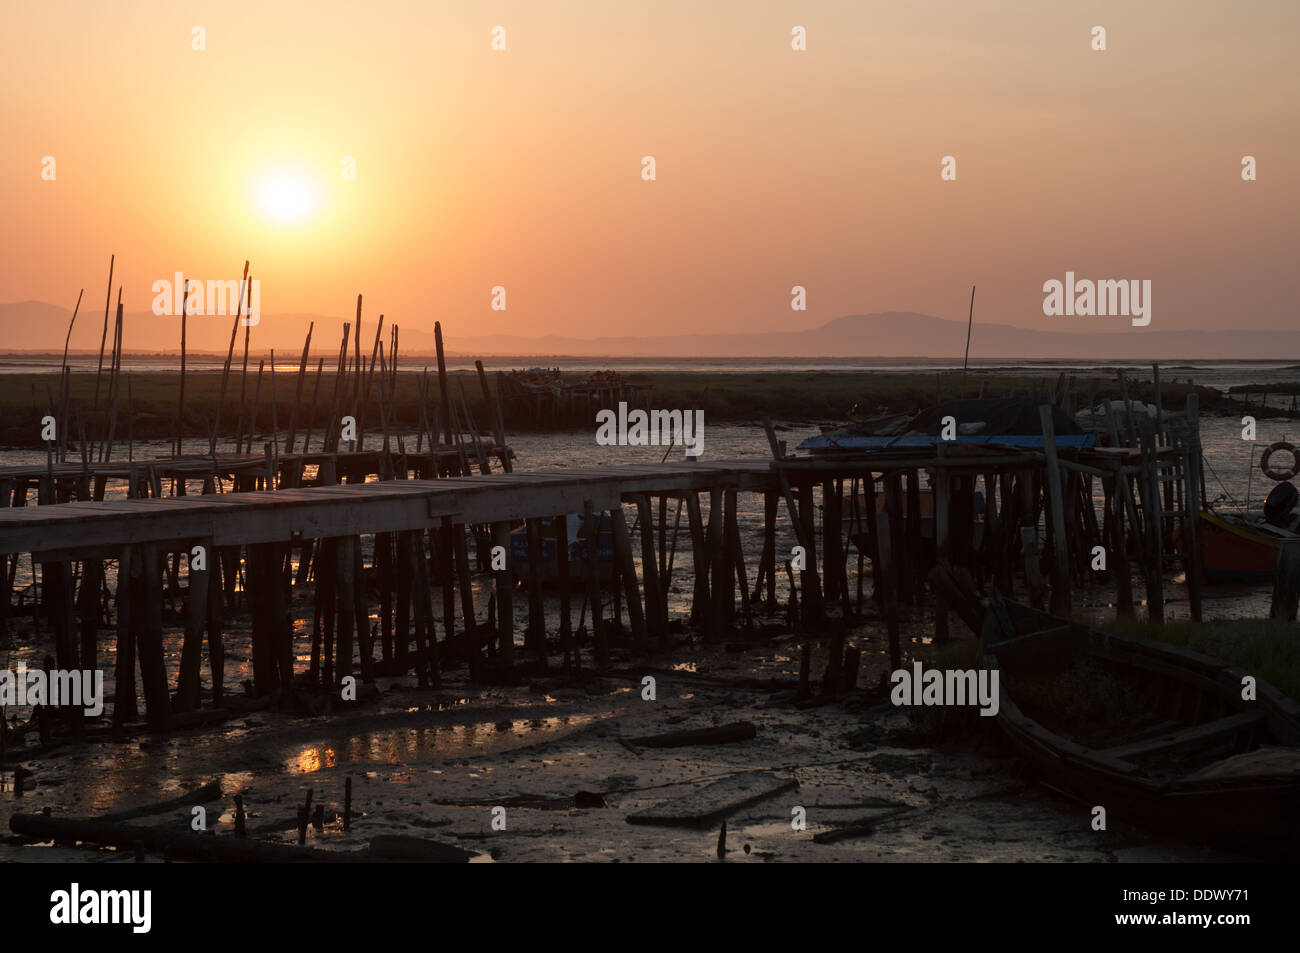 Palafític Fishing Port of Carrasqueira - Stock Image